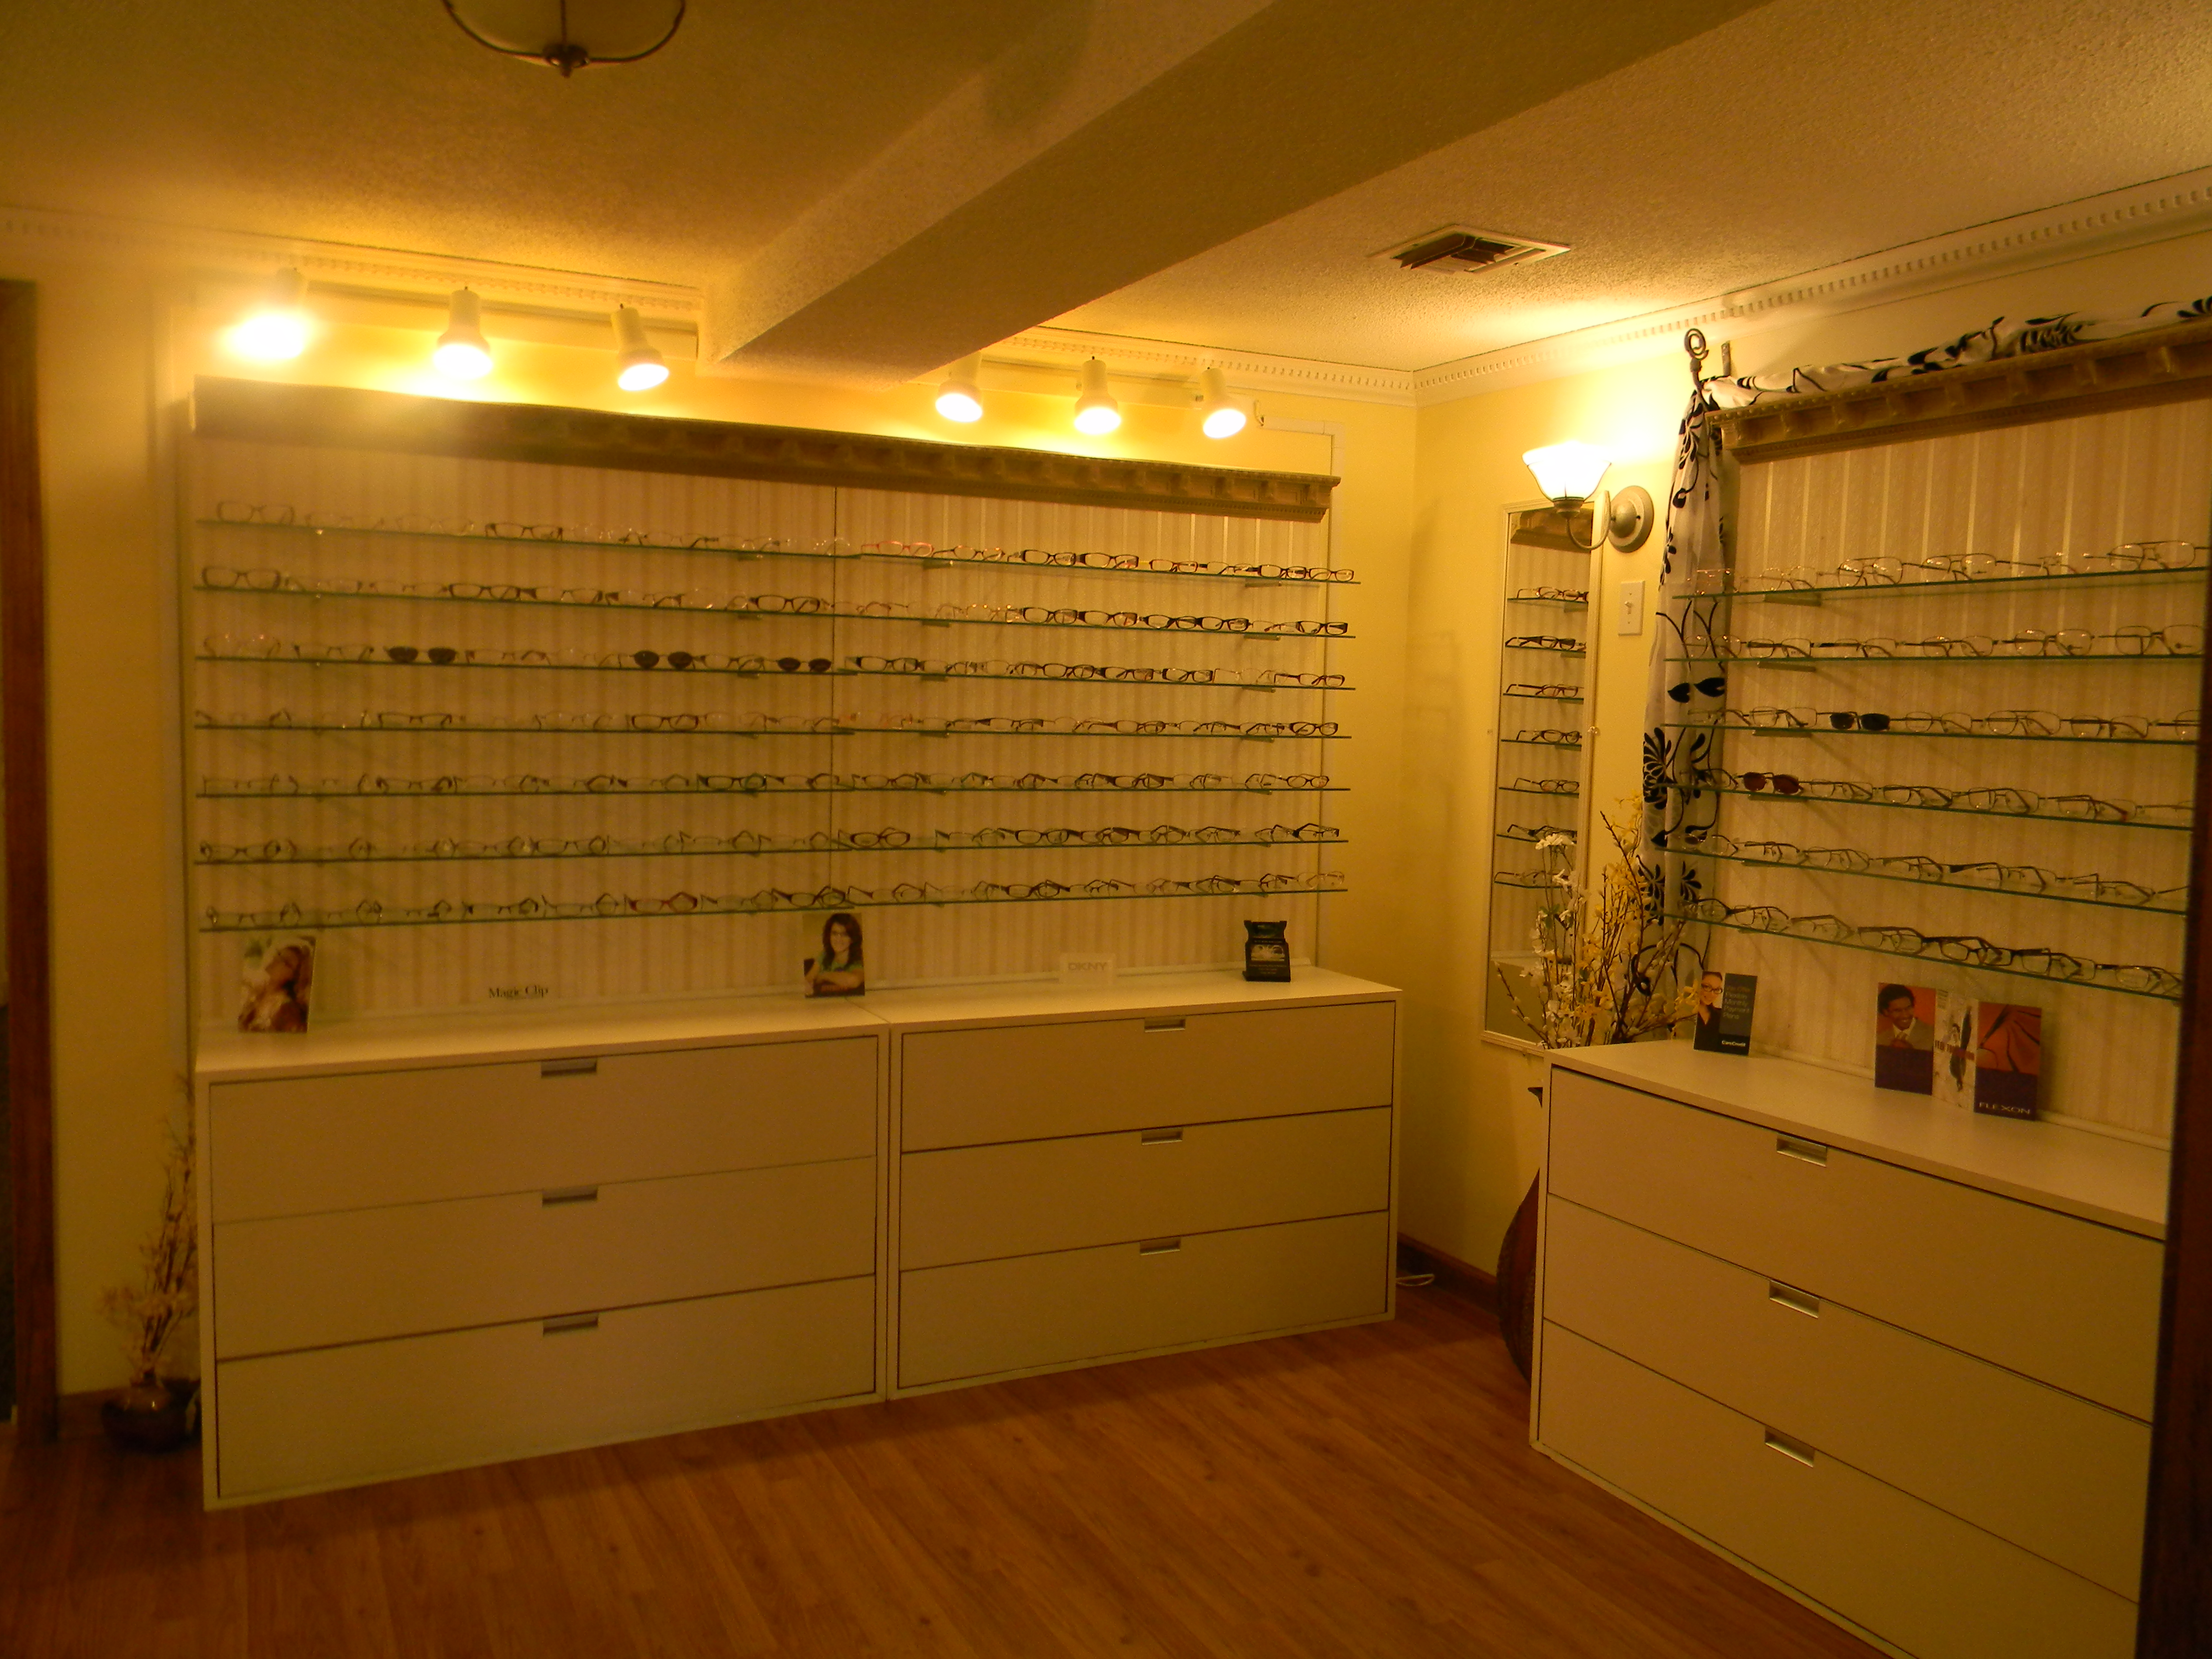 Greenville Eyeglass & ContactsContacts in Greenville Illinois